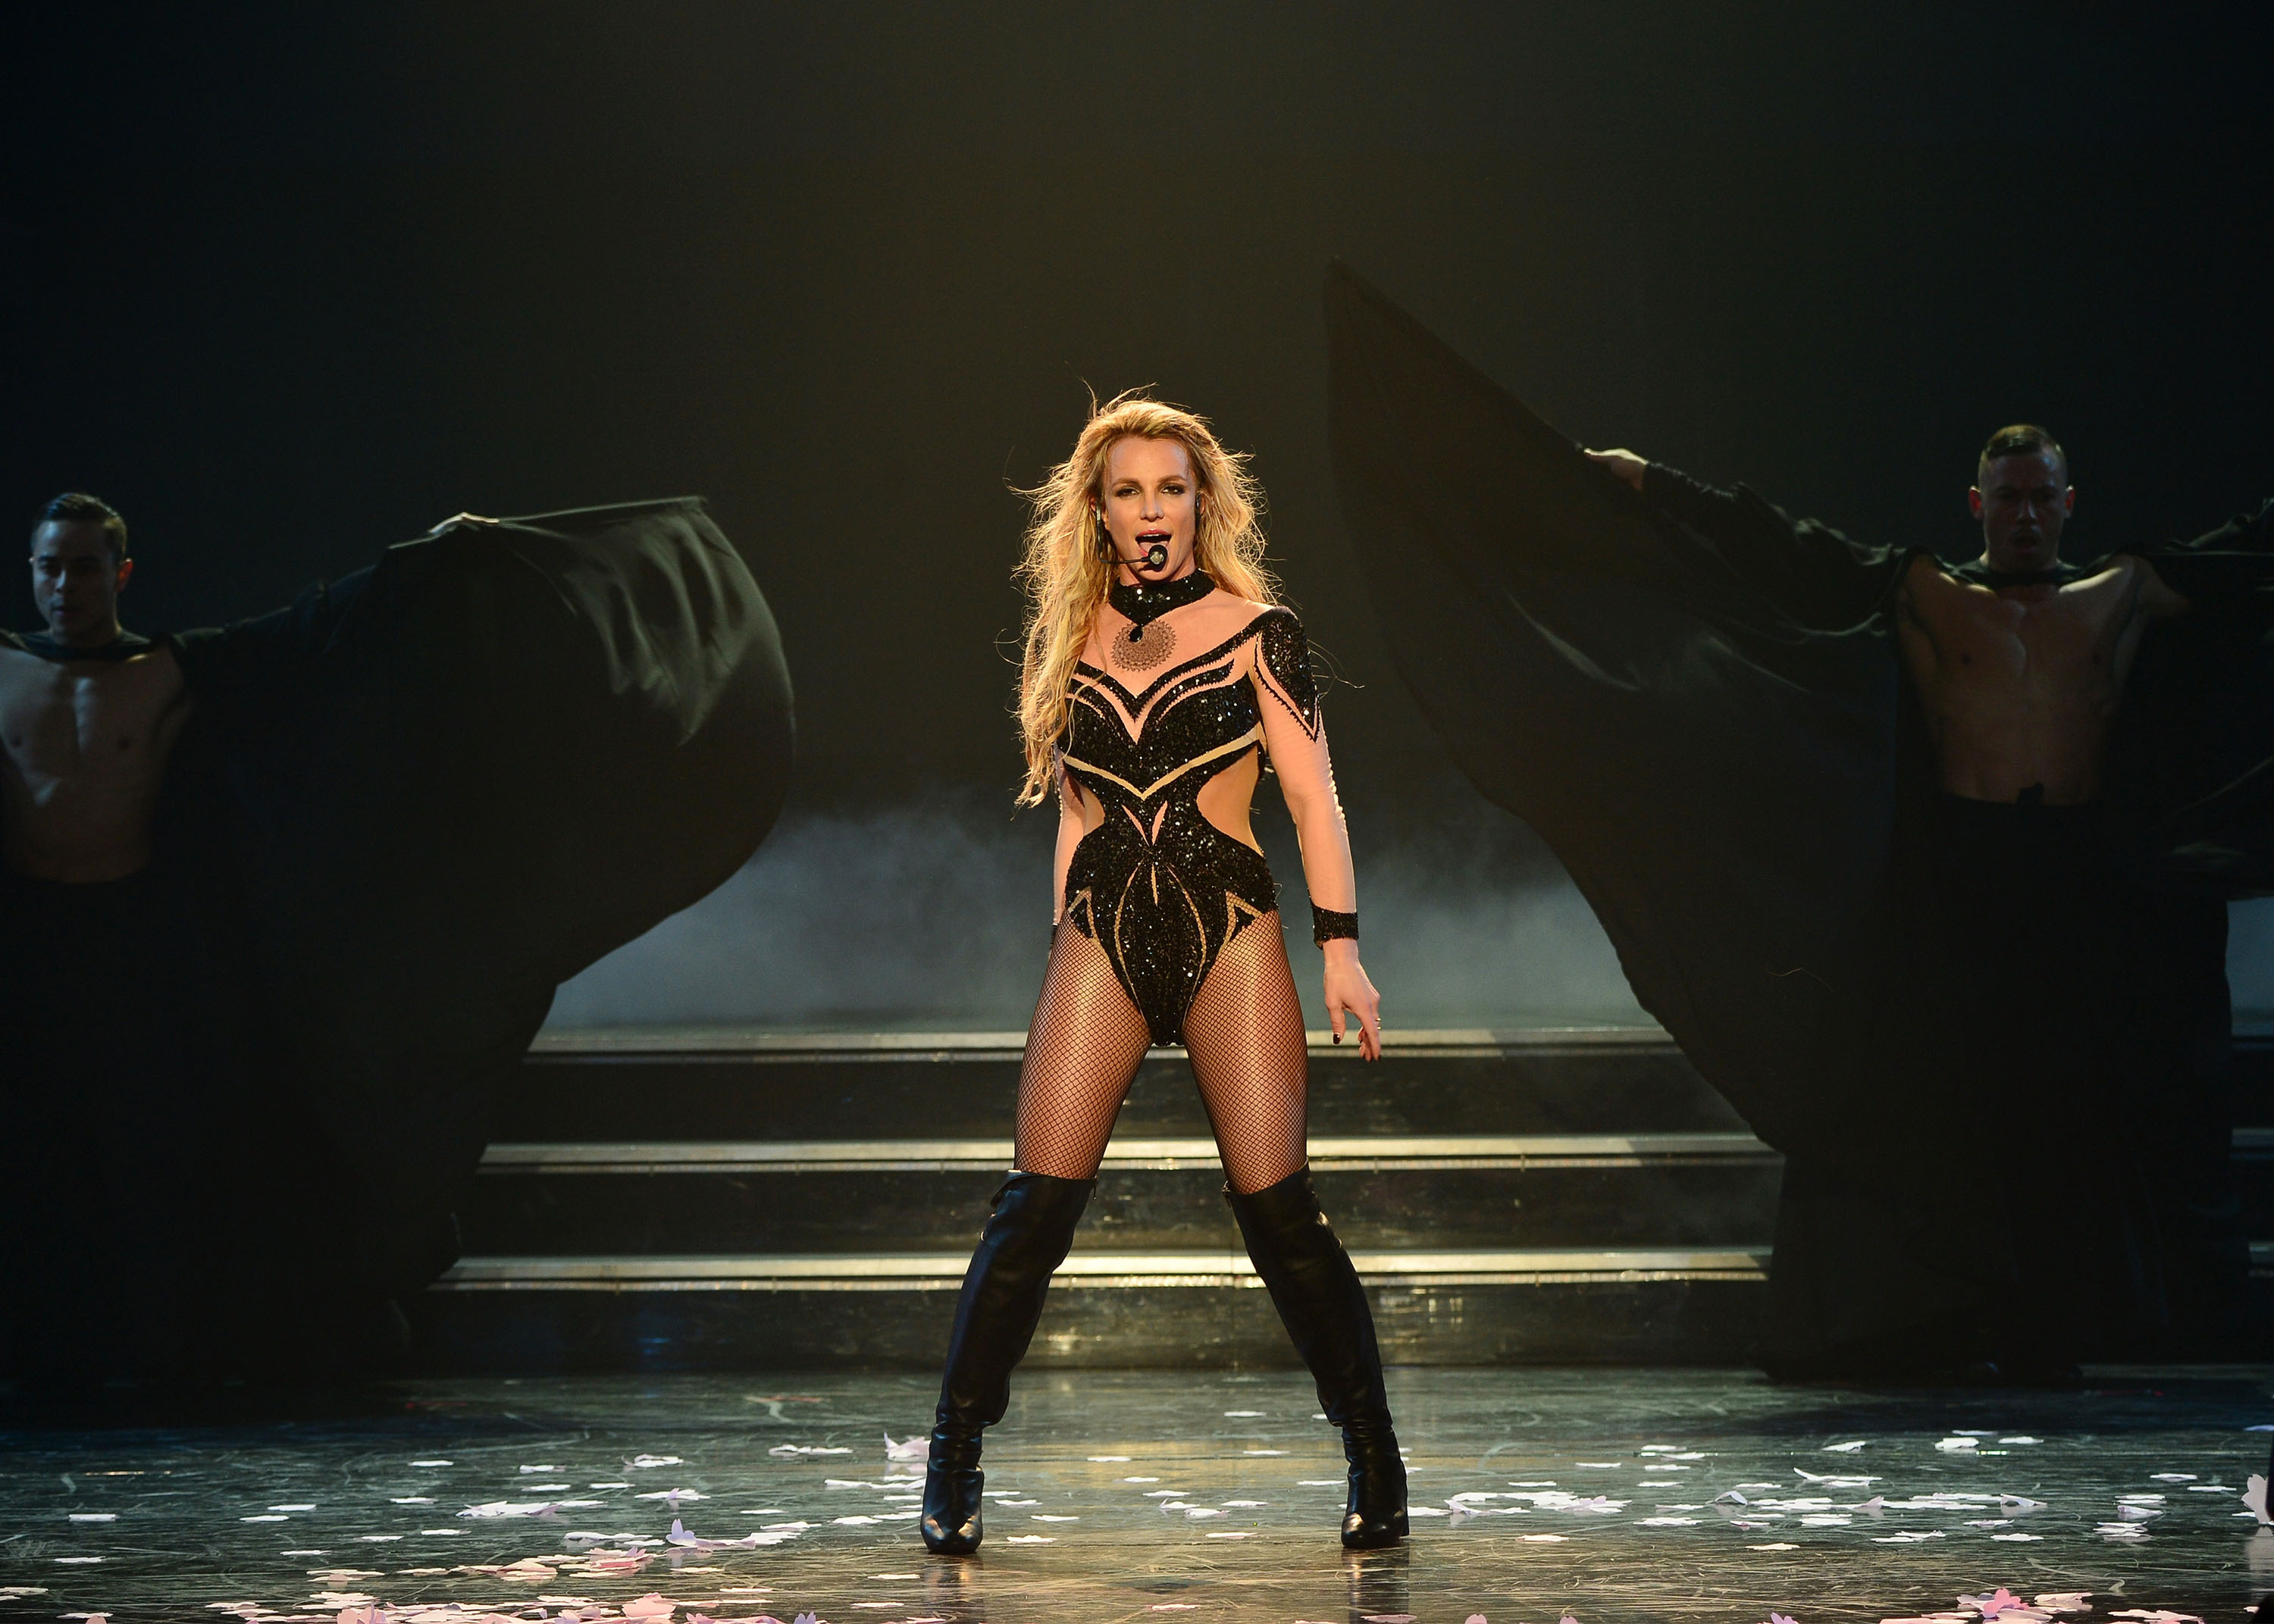 Britney Spears performs at Planet Hollywood Resort in Las Vegas on Feb. 26, 2016